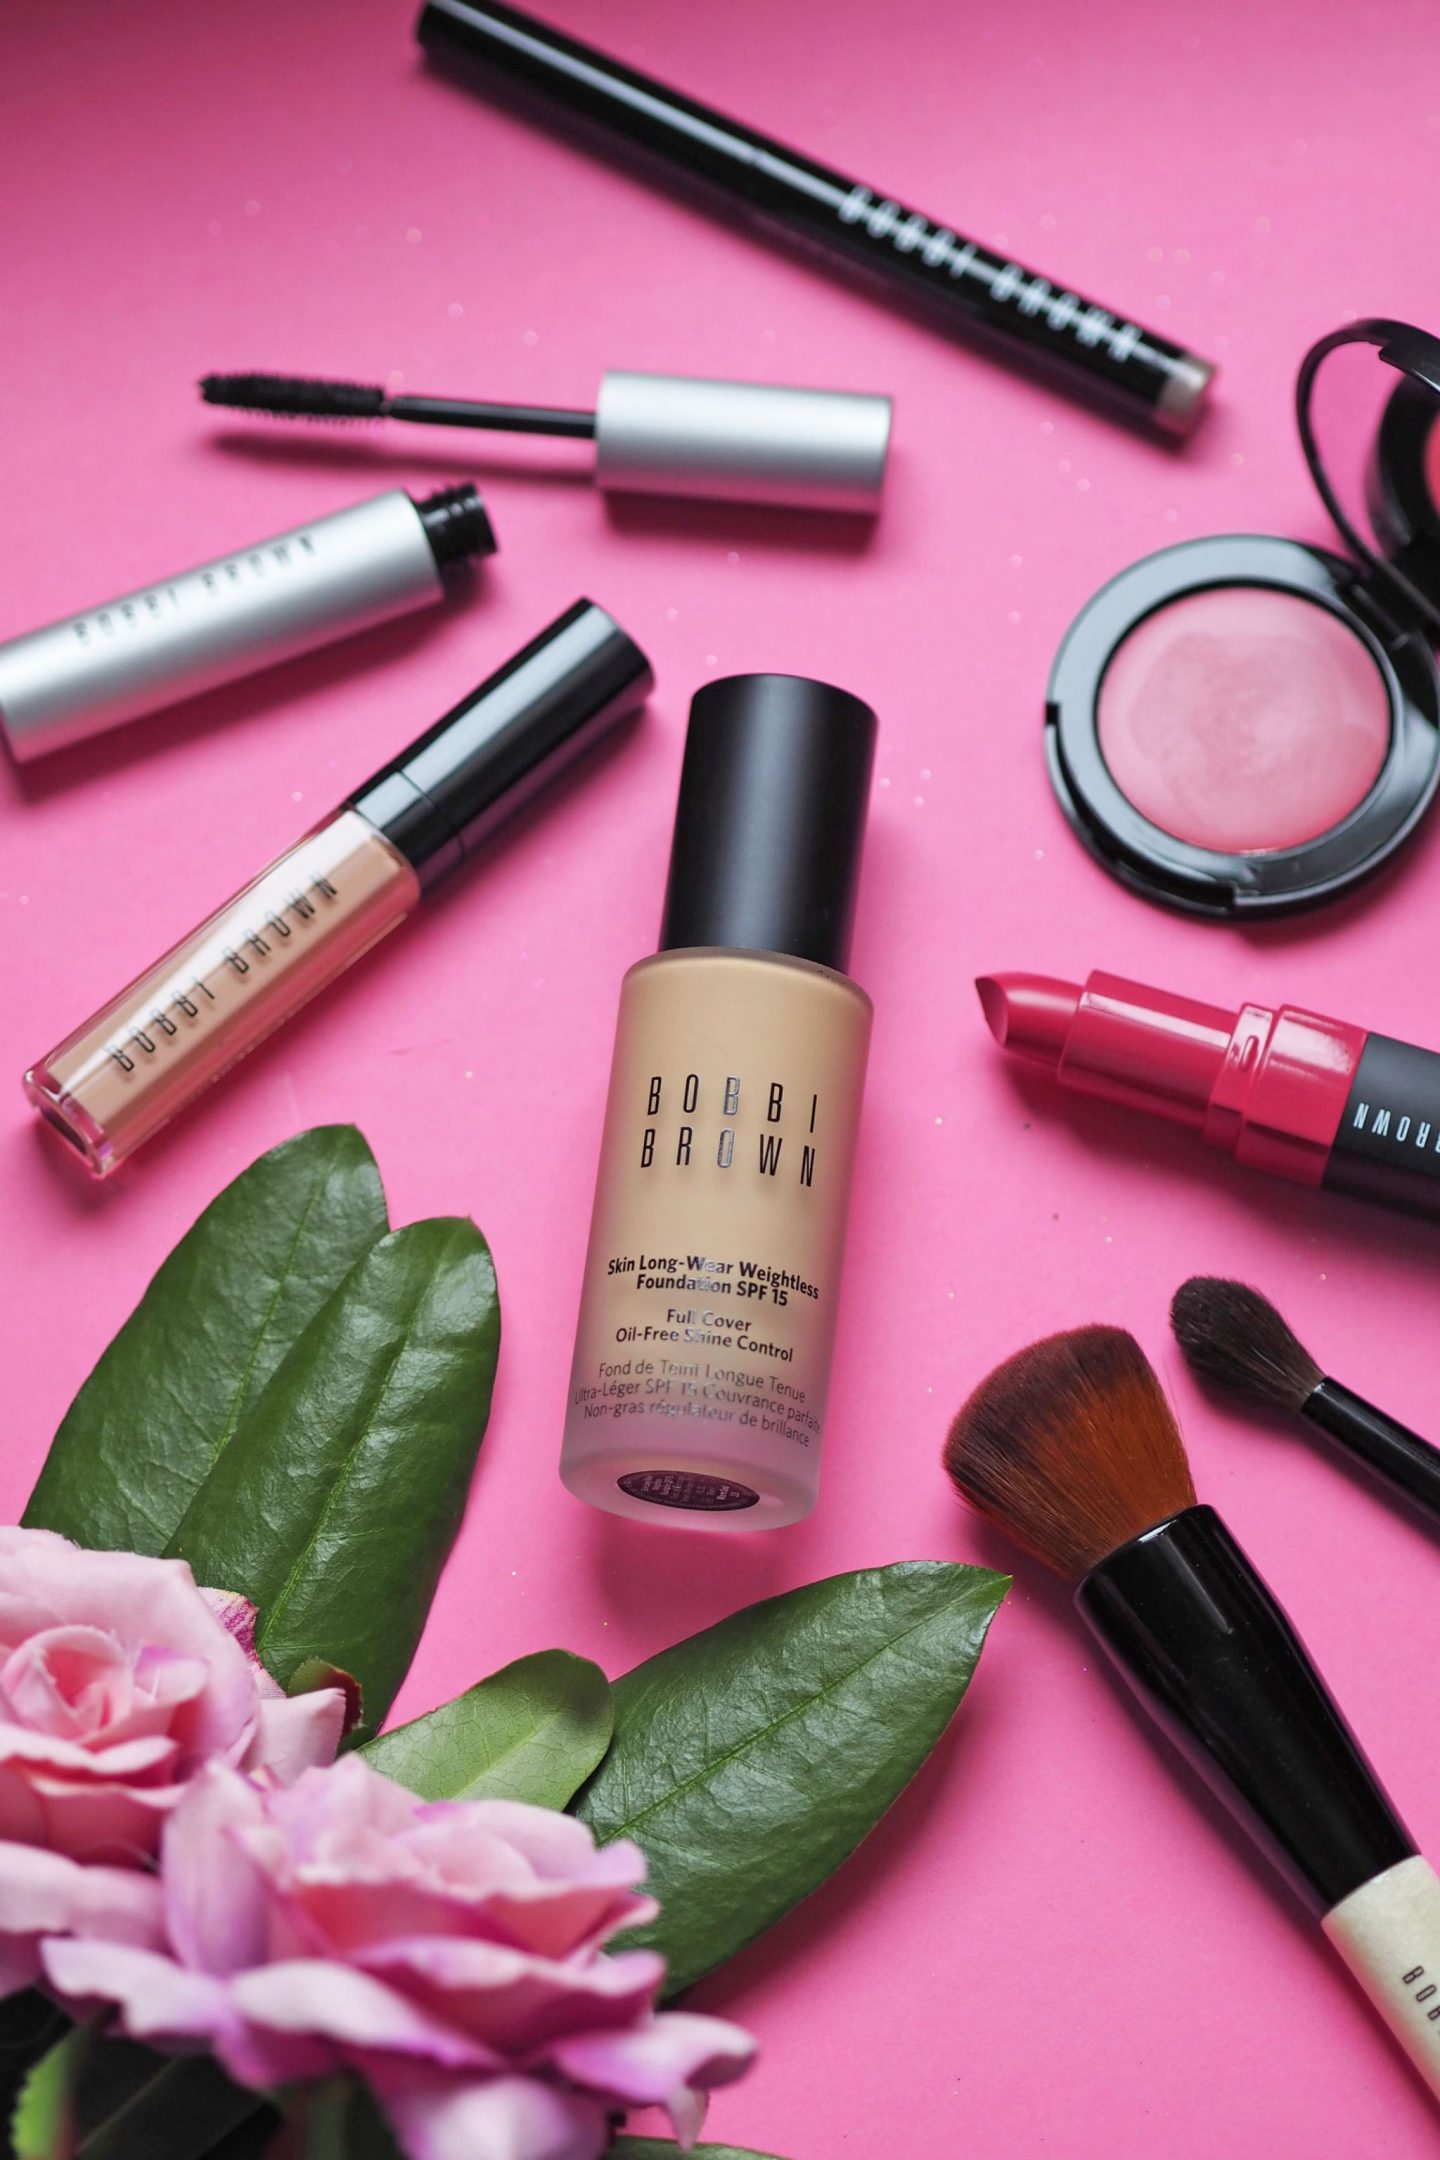 Bobbi Brown My #CantLiveWithout Makeup Products. - Laura ...